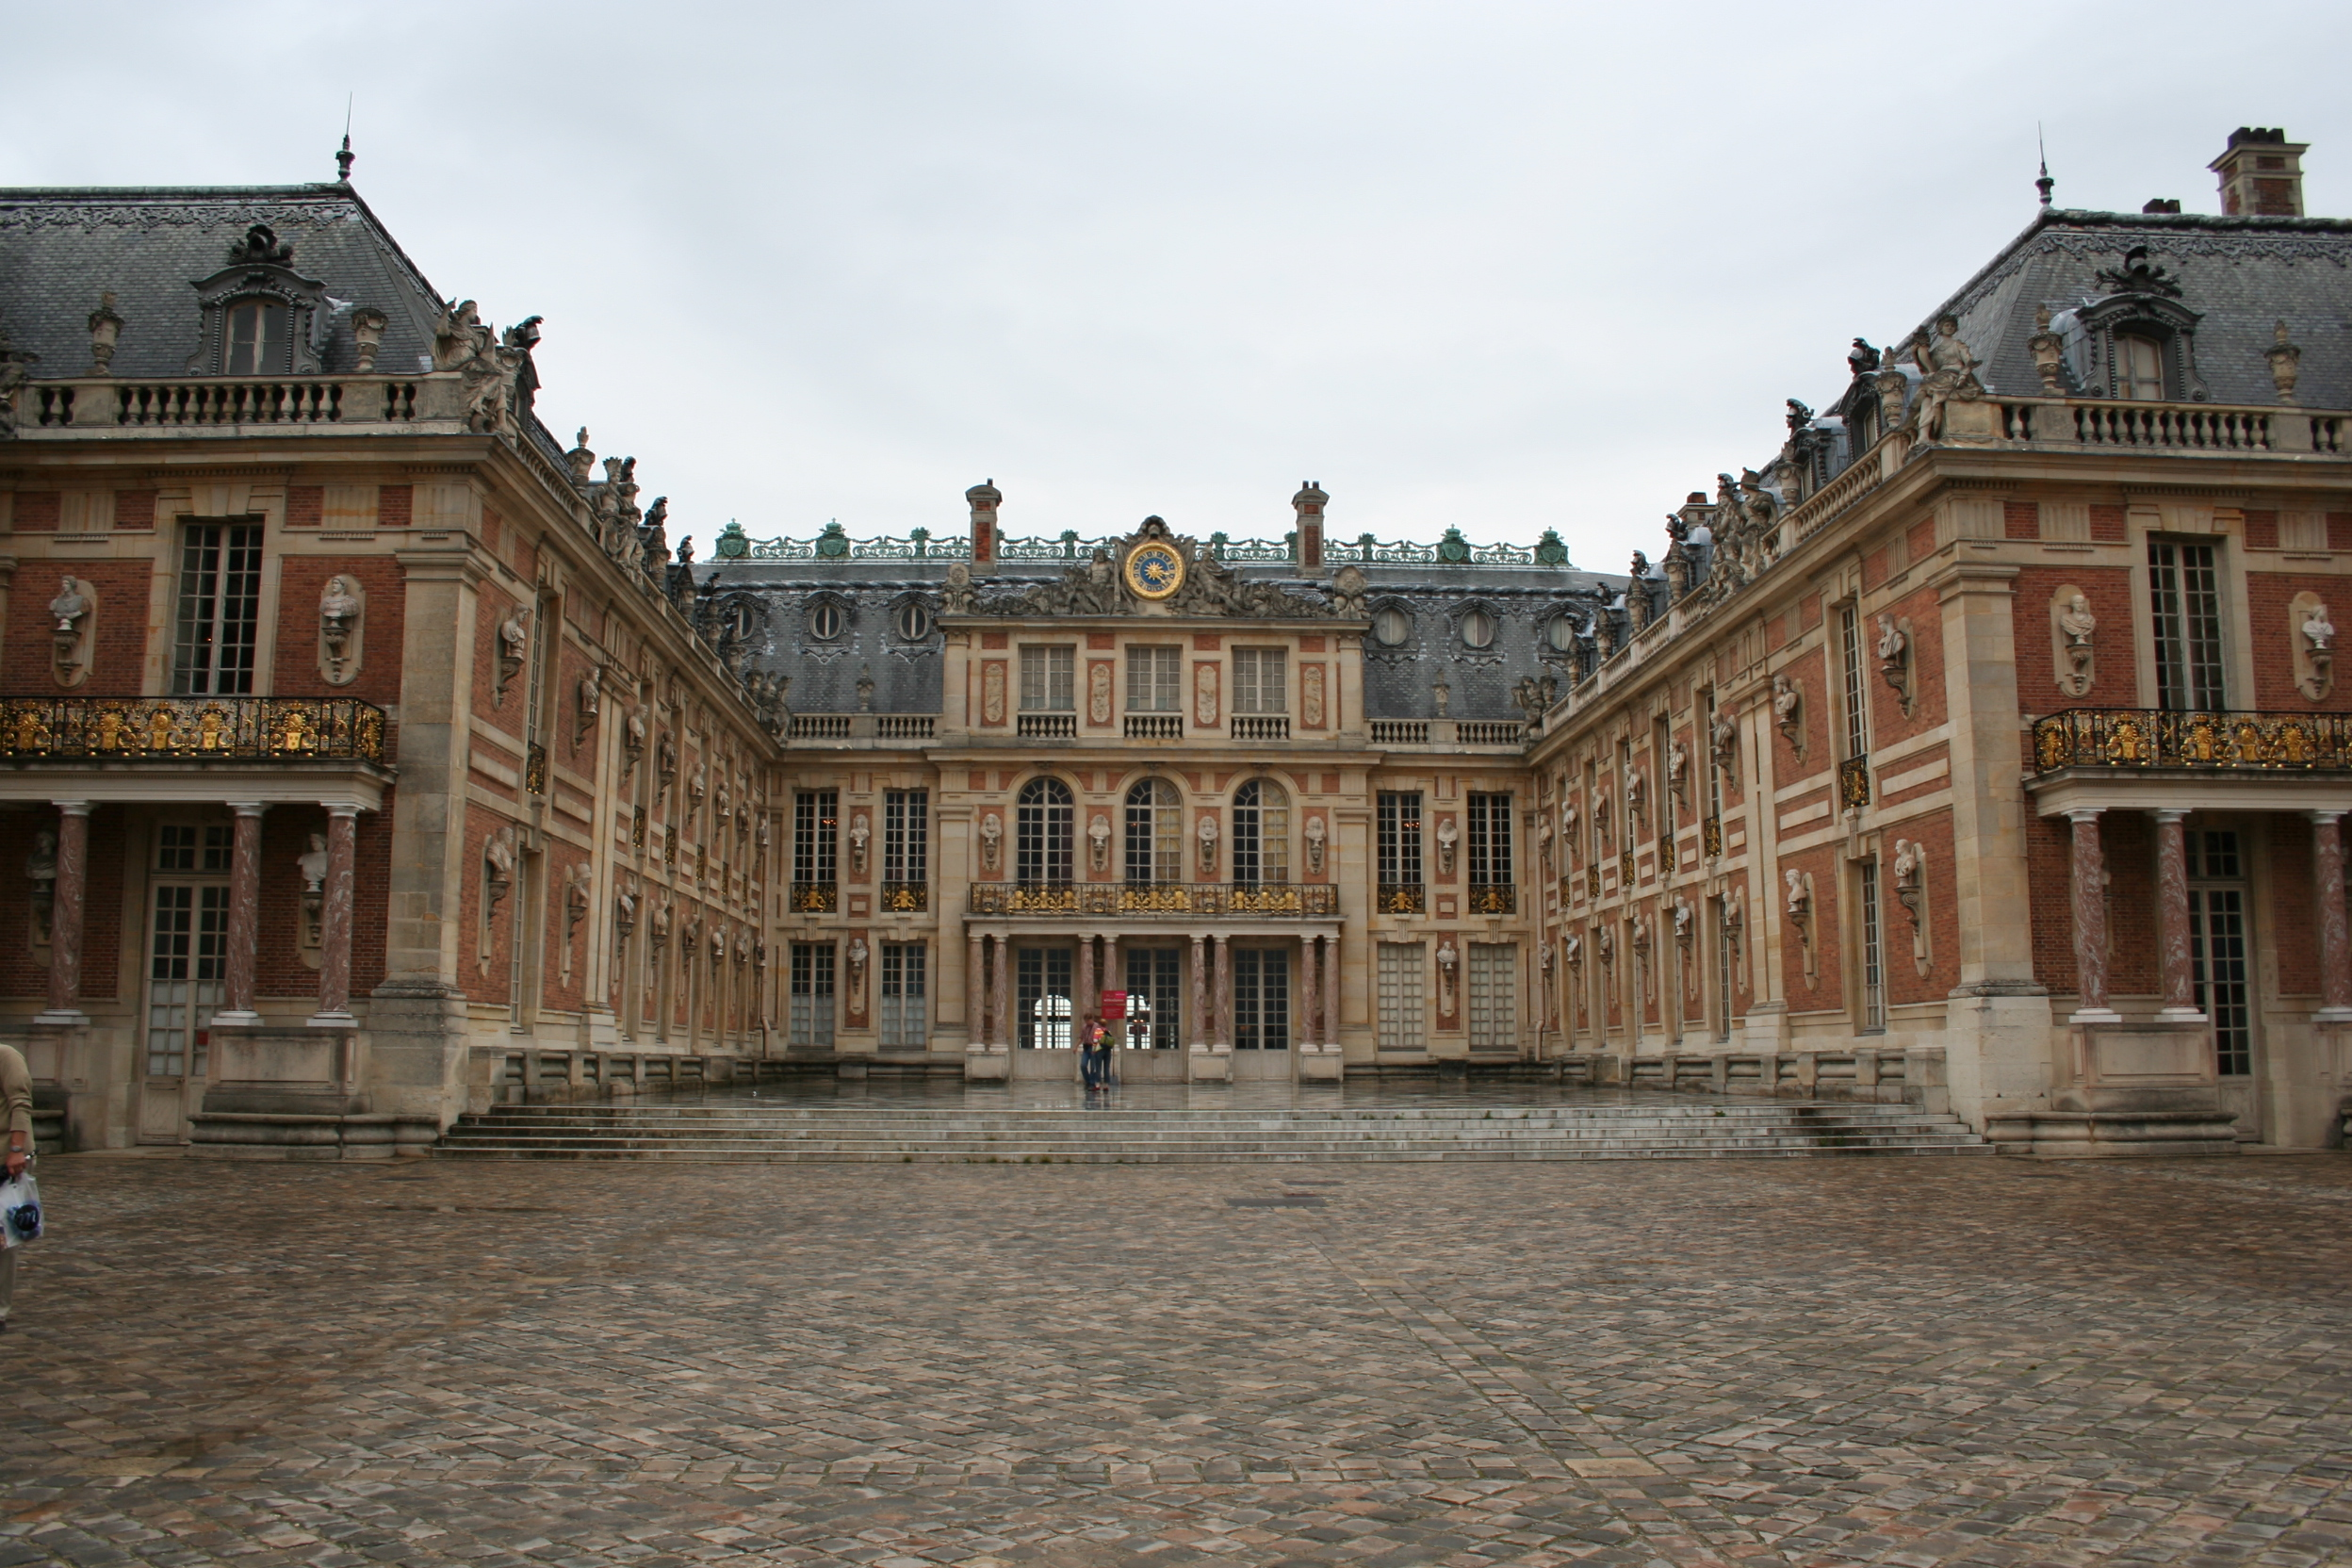 Palace_of_versailles_mramorniy_dvor_France